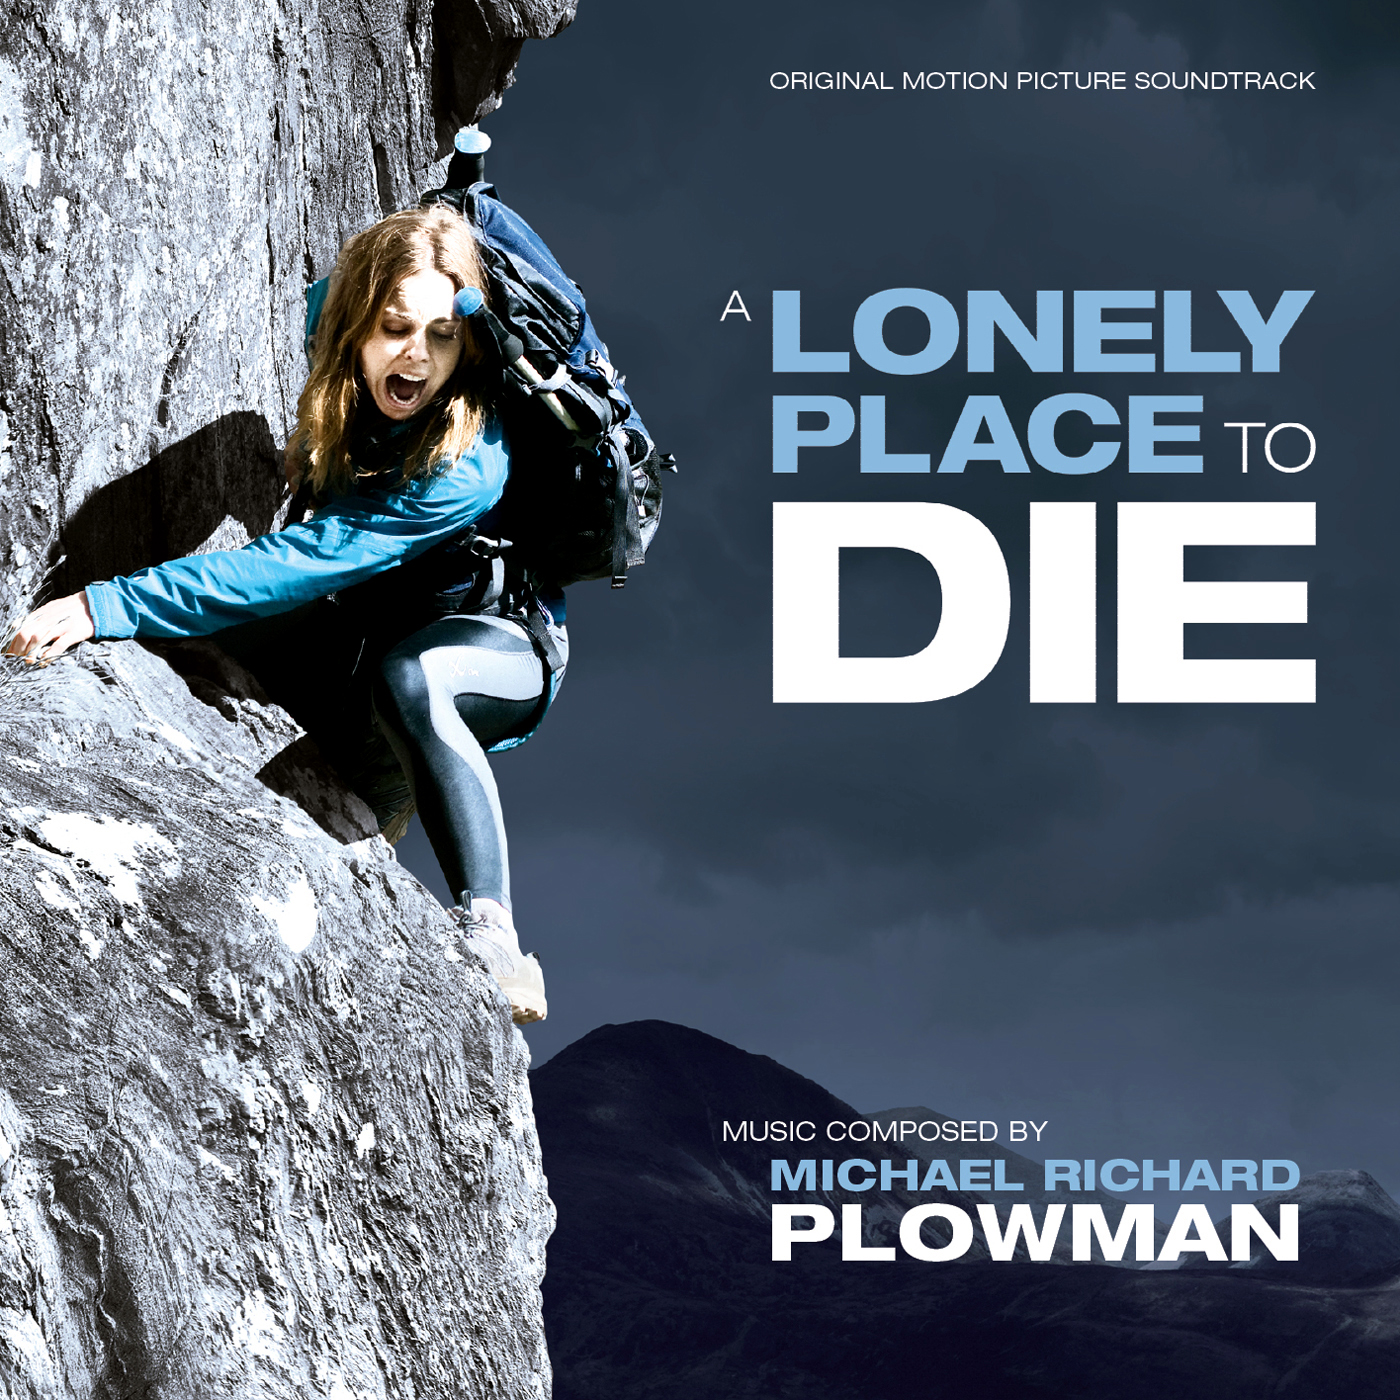 A Lonely Place To Die 2011 Non Stop Online Free